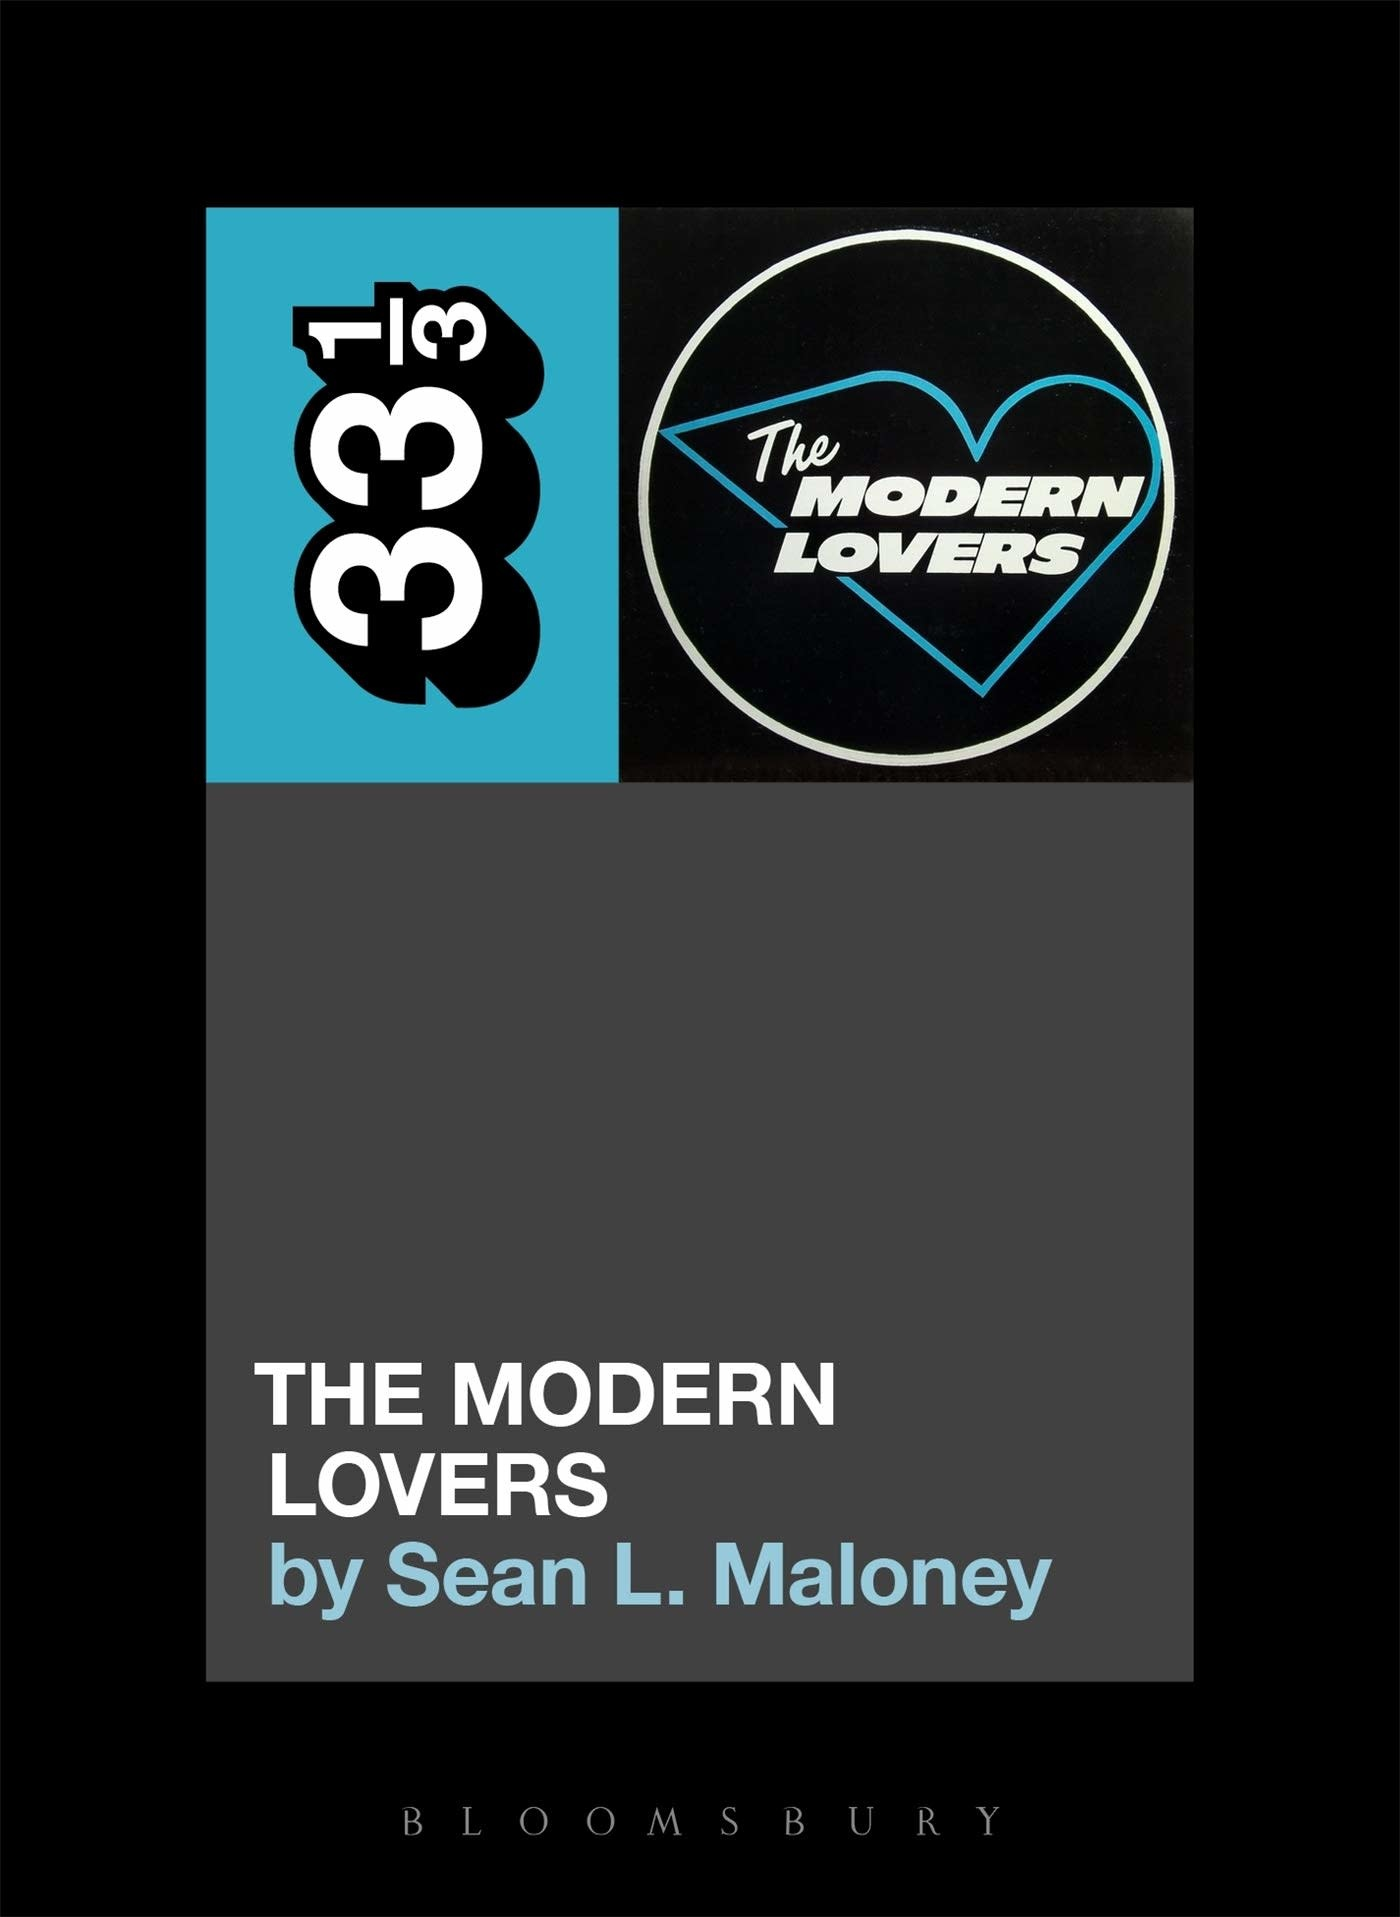 33 1/3 Series 33 1/3 - #119 - The Modern Lovers' S/T - Sean L. Maloney